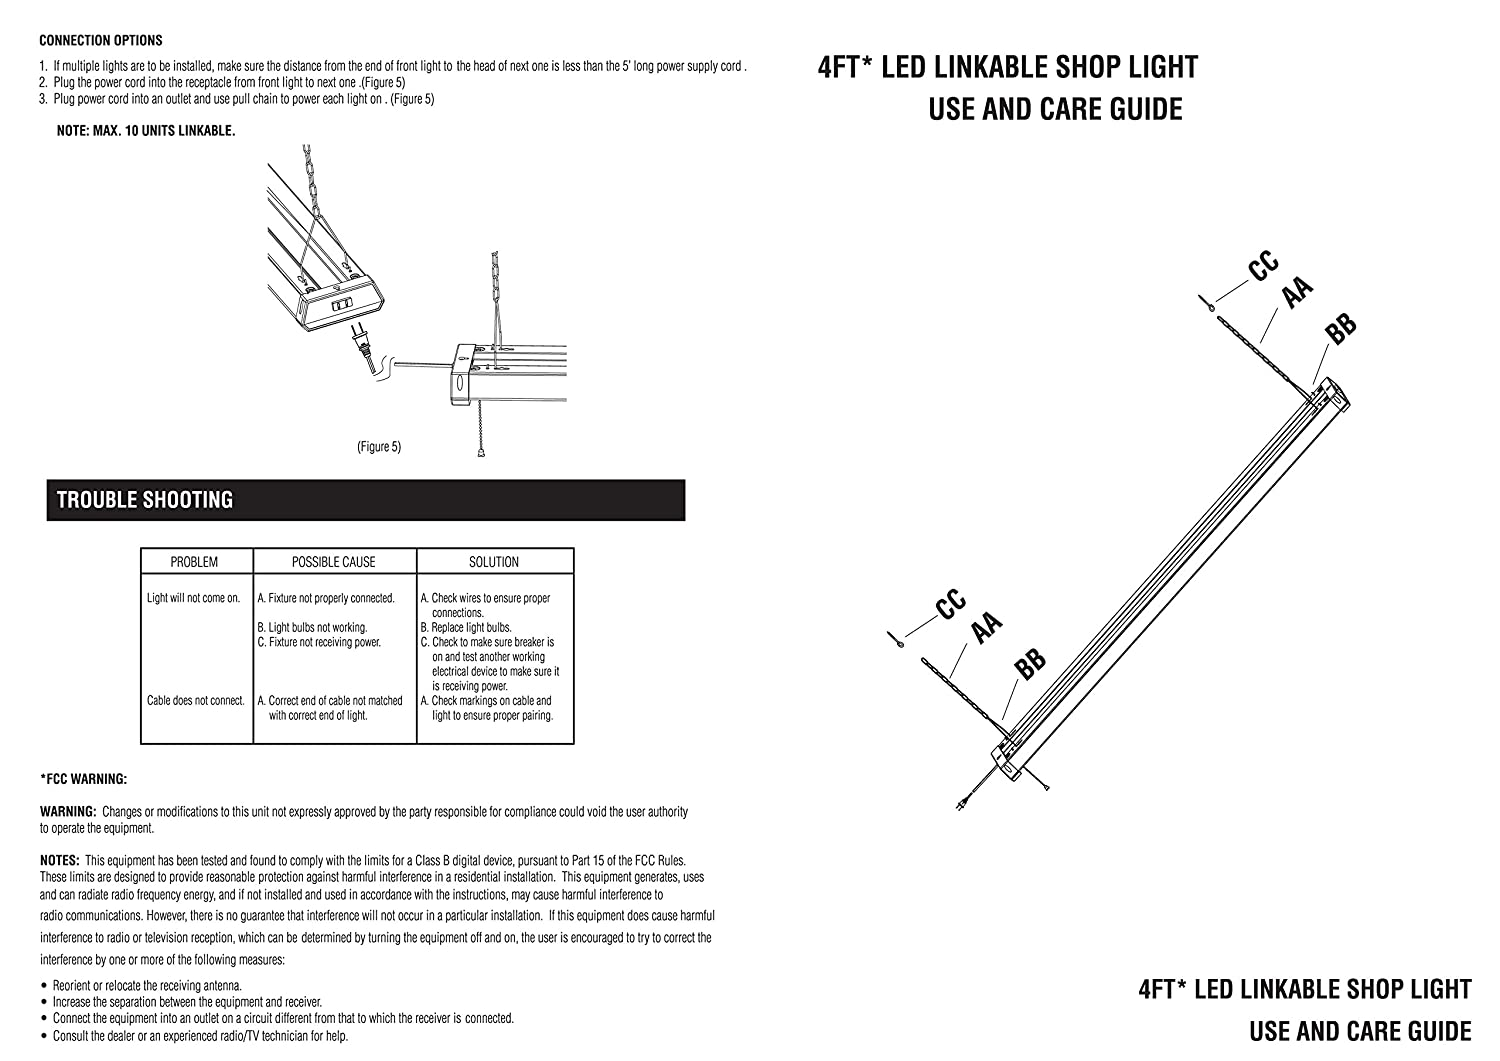 shop light fixture wiring diagram wire center u2022 rh 207 246 102 26